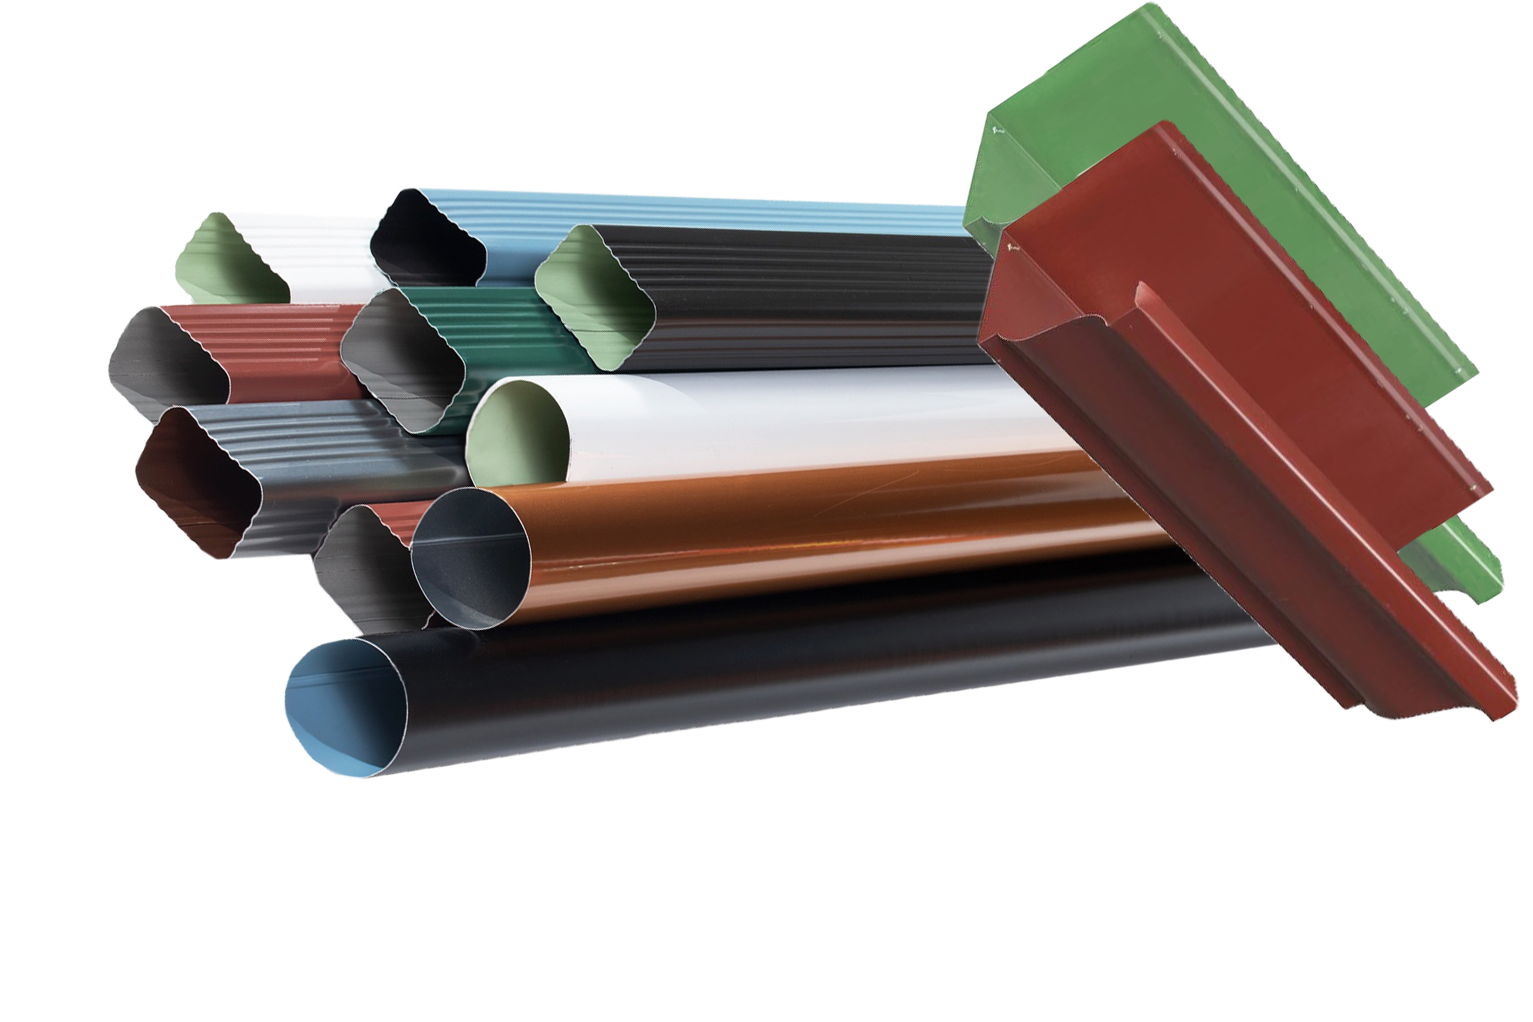 wide variety of gutters in multiple colors